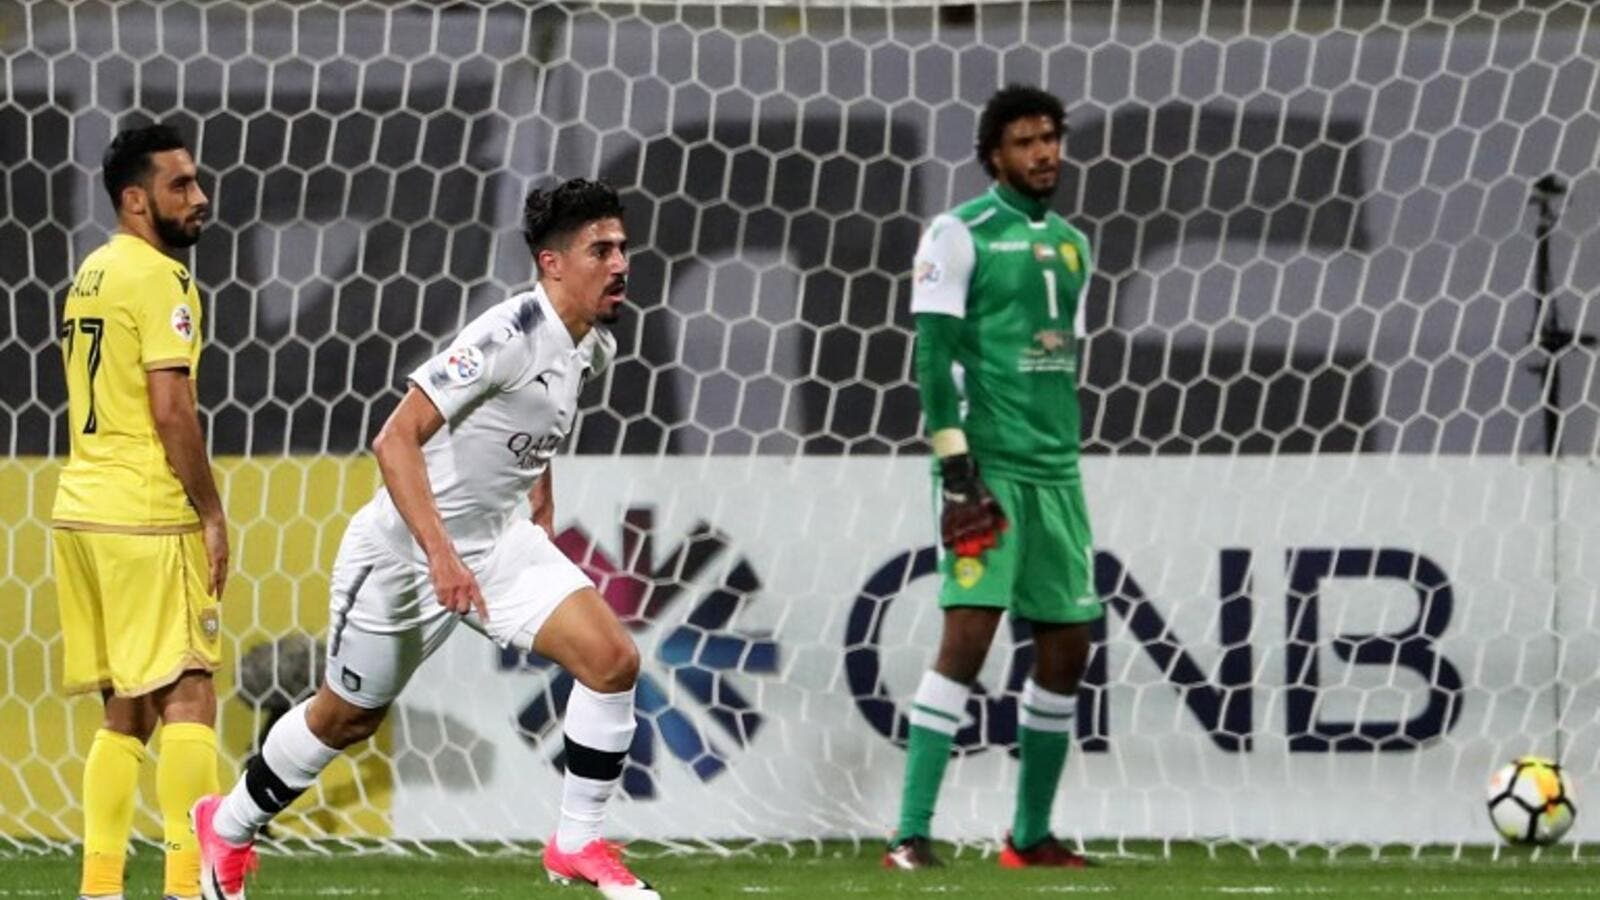 Qatar's al-Sadd player Baghdad Bounedjah (C) celebrates after scoring a goal during the AFC Champions League group stage football match between al-Wasl and al-Sadd at the Zabeel Stadium in Dubai on February 13, 2018.